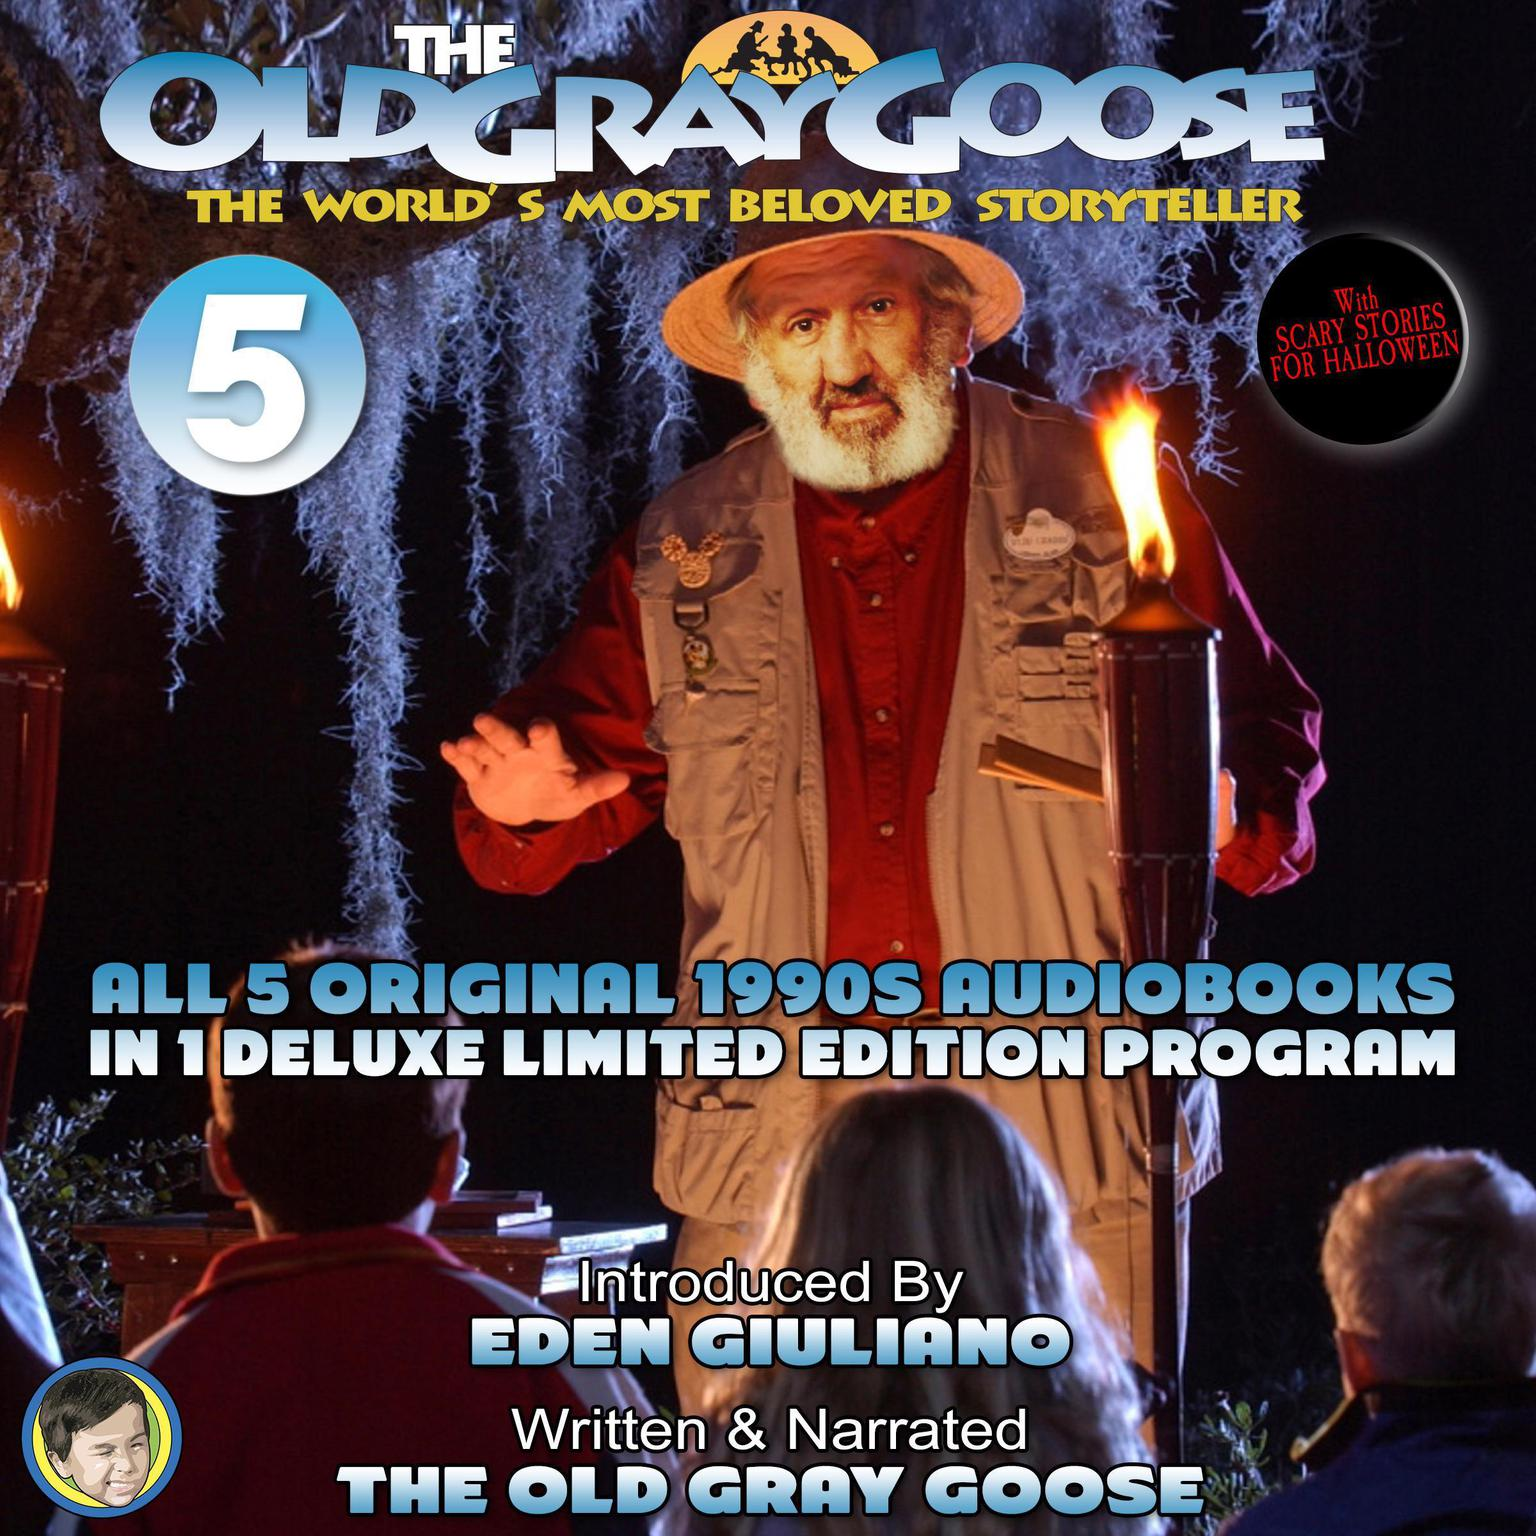 The Old Gray Goose The Worlds Most Beloved Storyteller: All 5 Original 1990s Audiobooks In 1 Deluxe Limited Edition Program Audiobook, by The Old Gray Goose